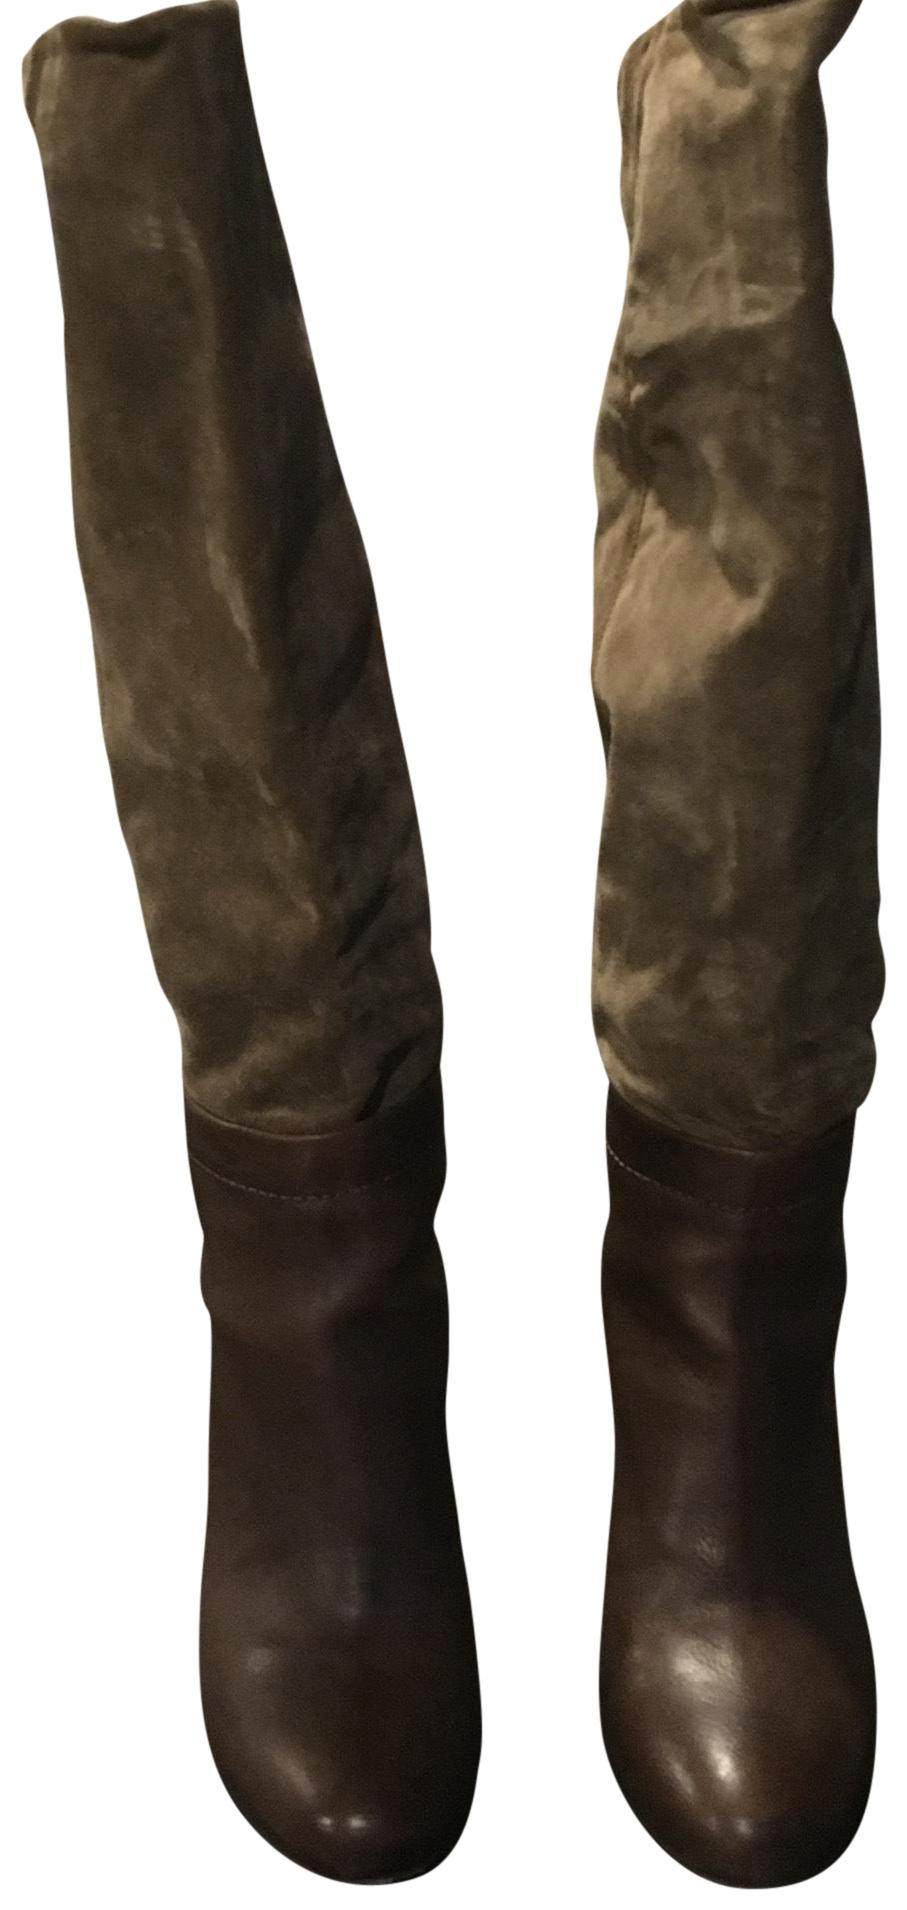 Vince Brown and Olive Green Boots/Booties Size US 7.5 Regular (M, B)